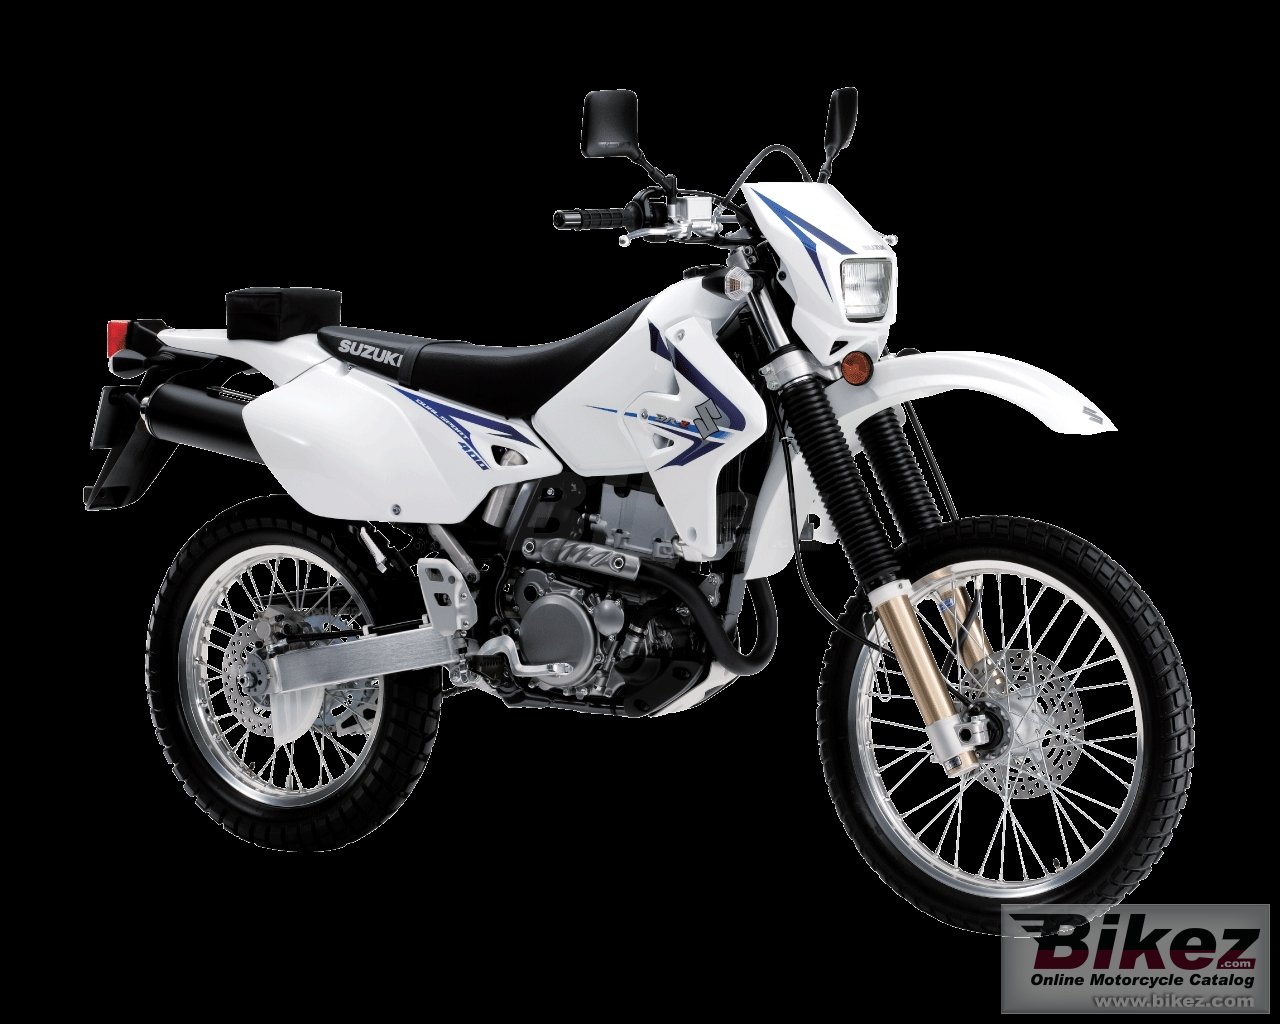 Big Suzuki dr-z400s picture and wallpaper from Bikez.com